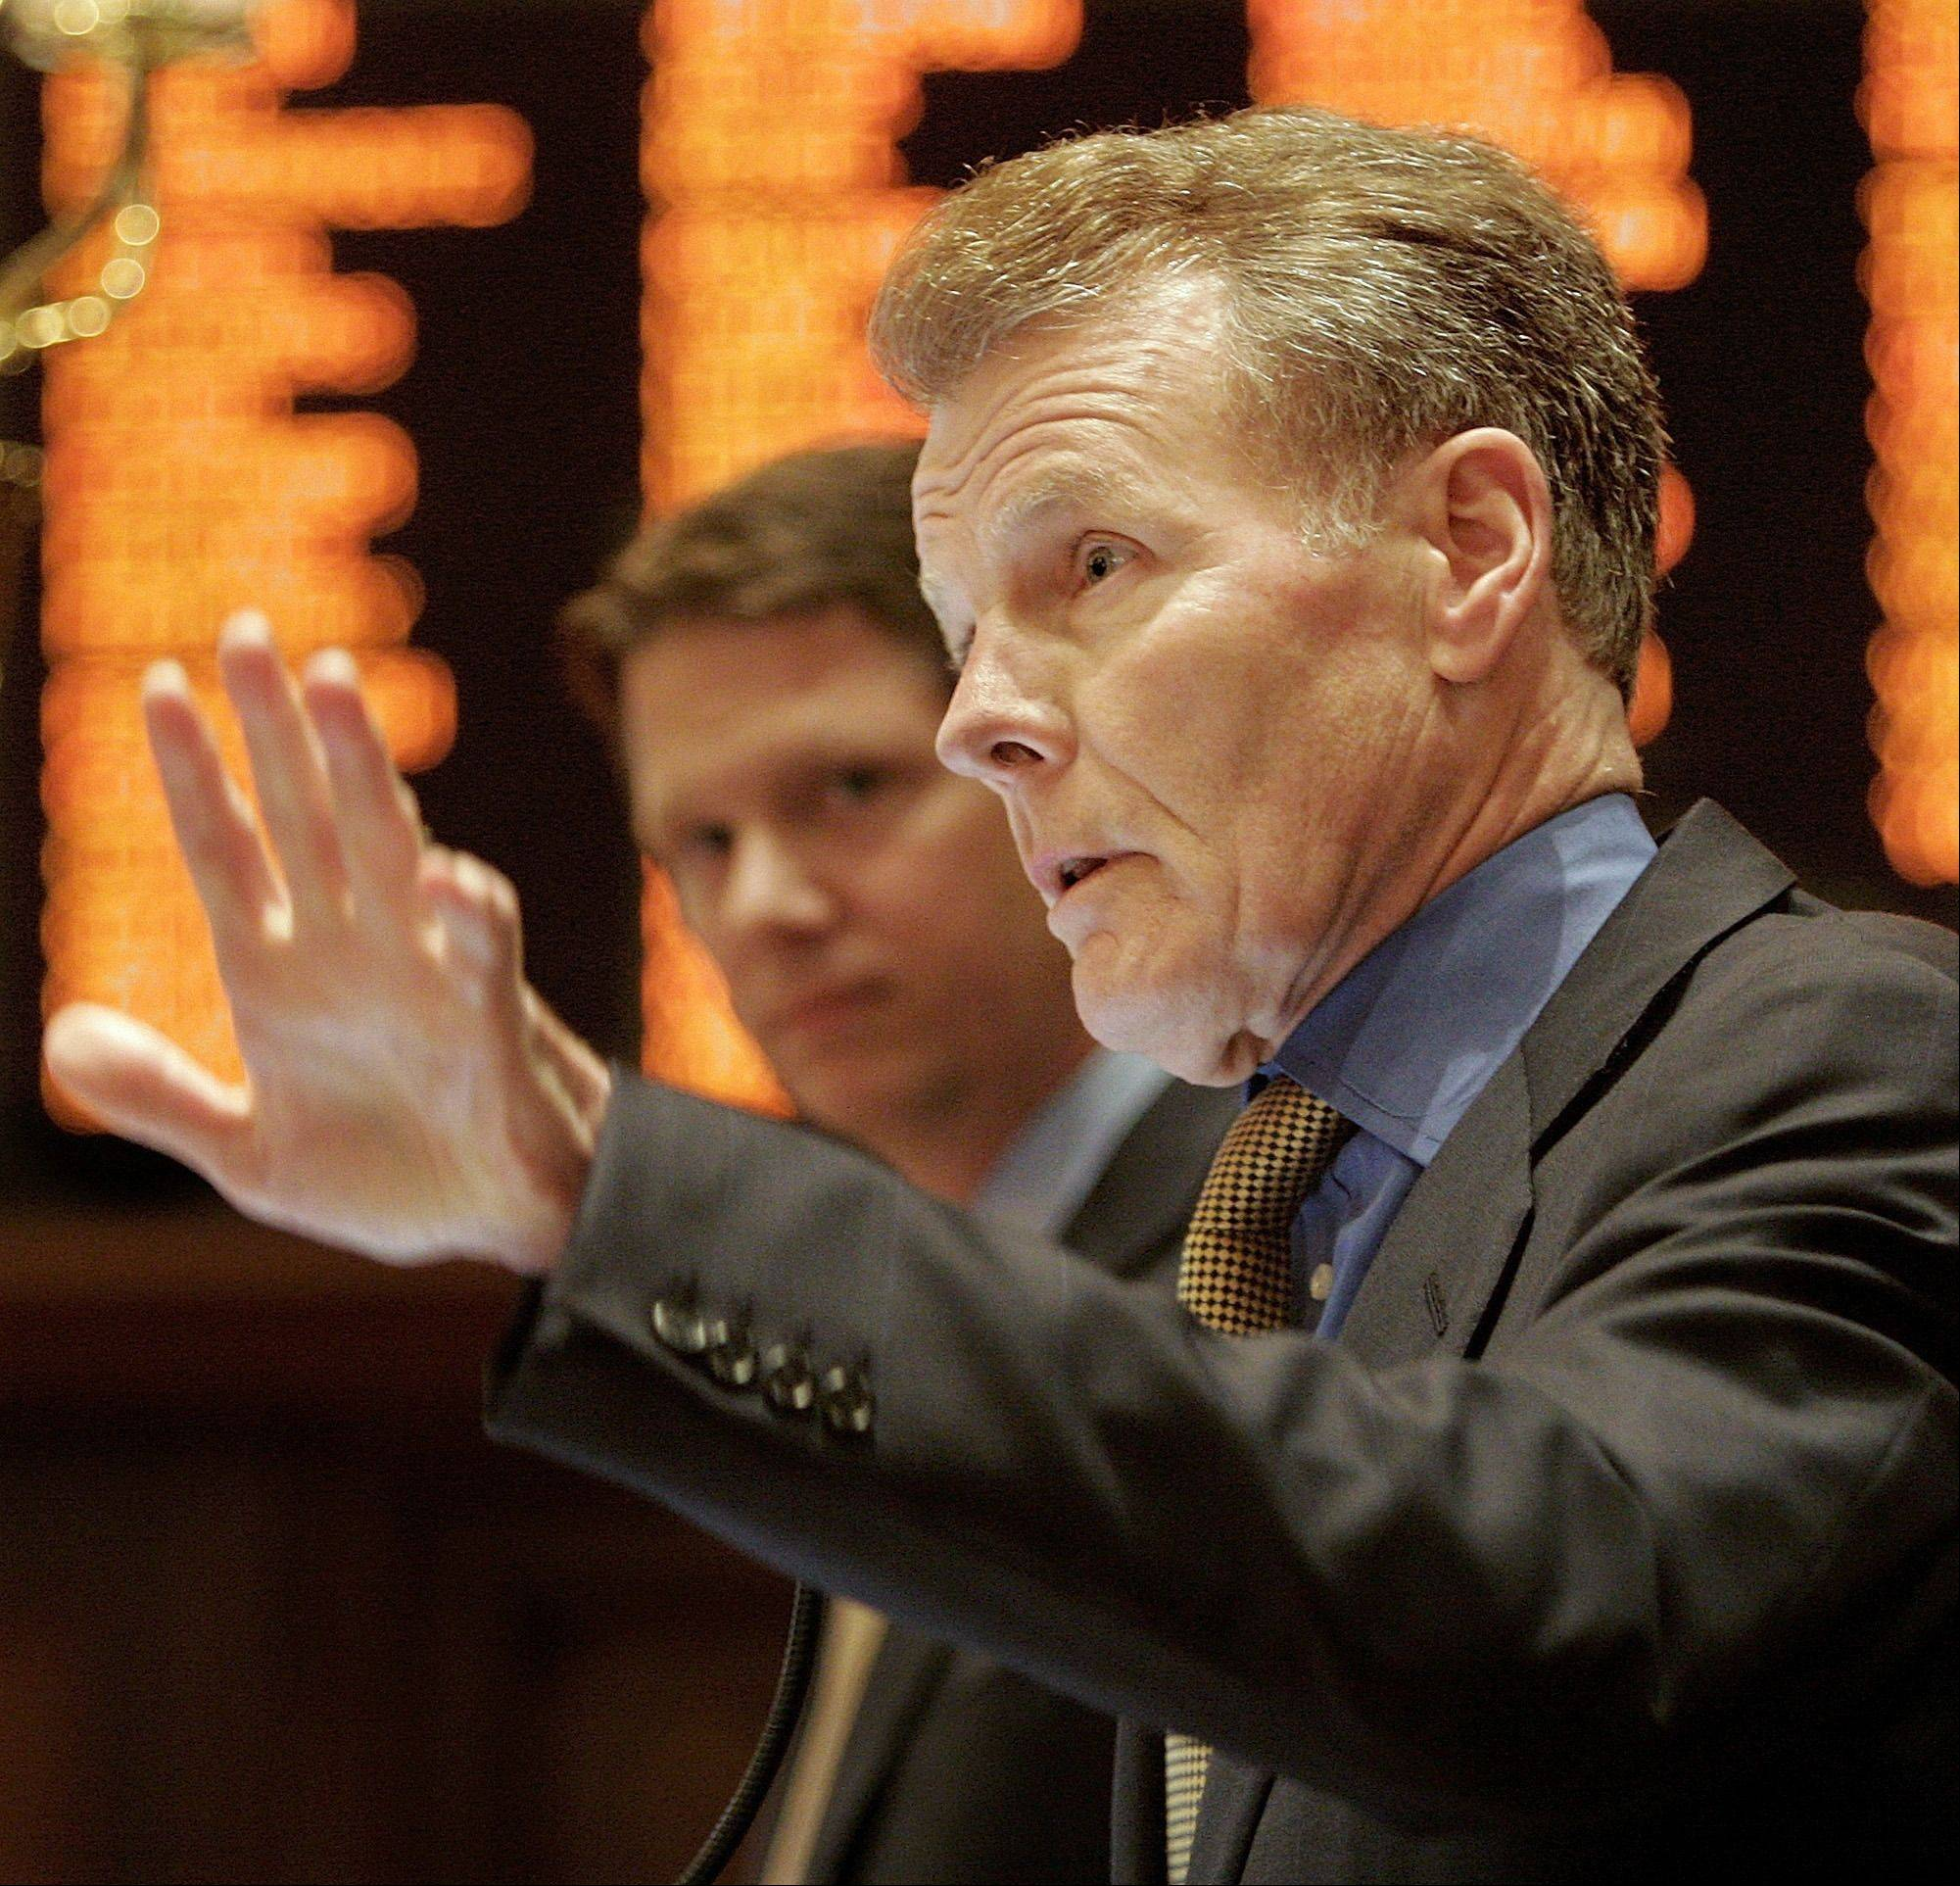 Illinois House Speaker Michael Madigan asked then Metra CEO Alex Clifford to boost Patrick Ward's $57,000 salary, the Chicago Sun-Tikmes reports.